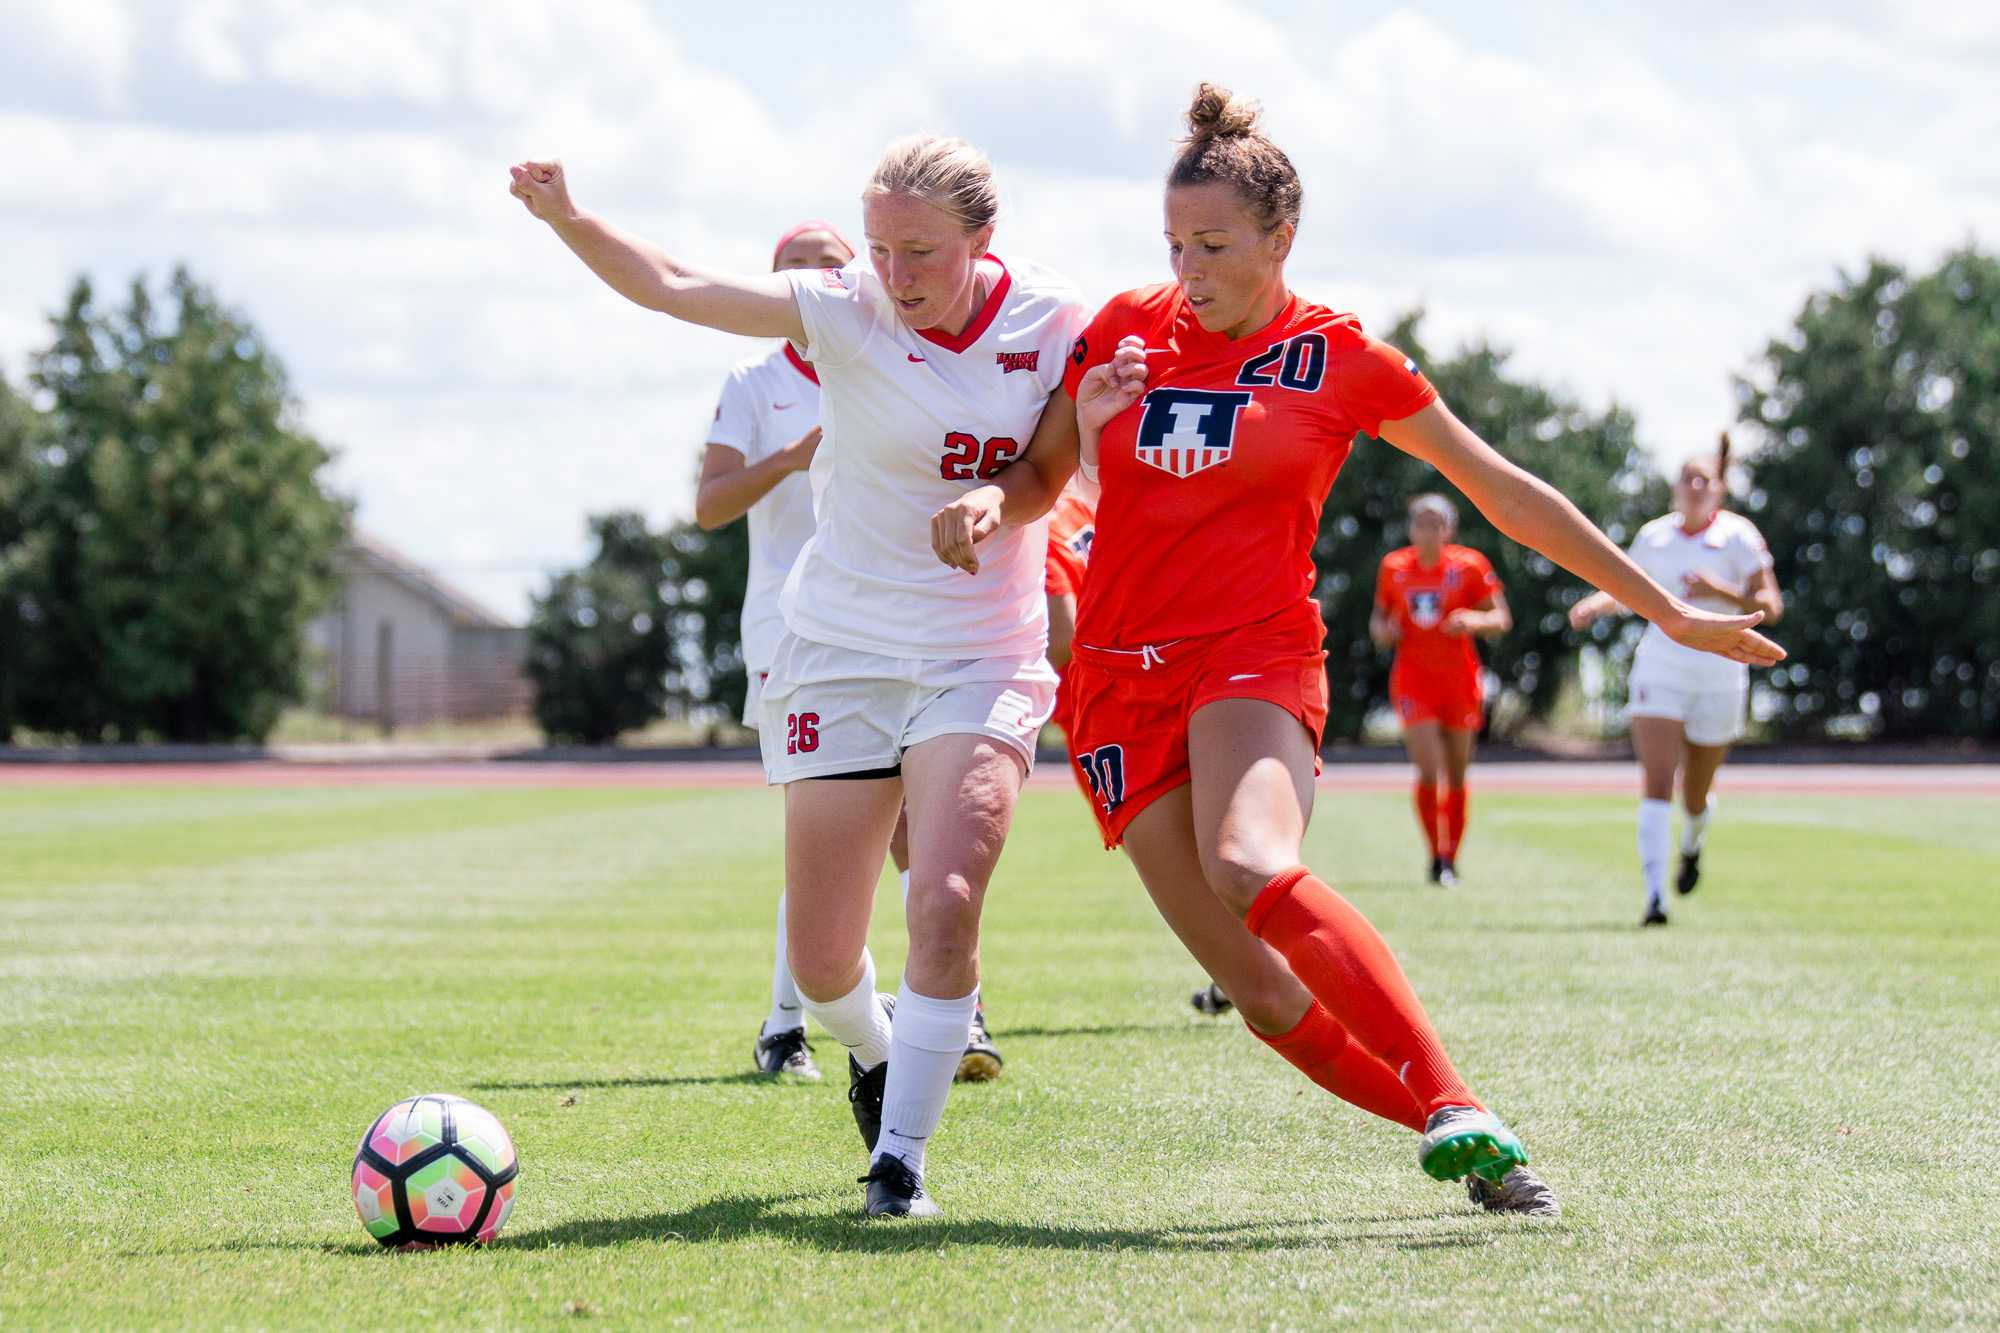 Illinois' Kara Marbury fights for possession of the ball during the game against Illinois State at Illnois Soccer Stadium on Sunday, August 21. The Illini won 1-0.